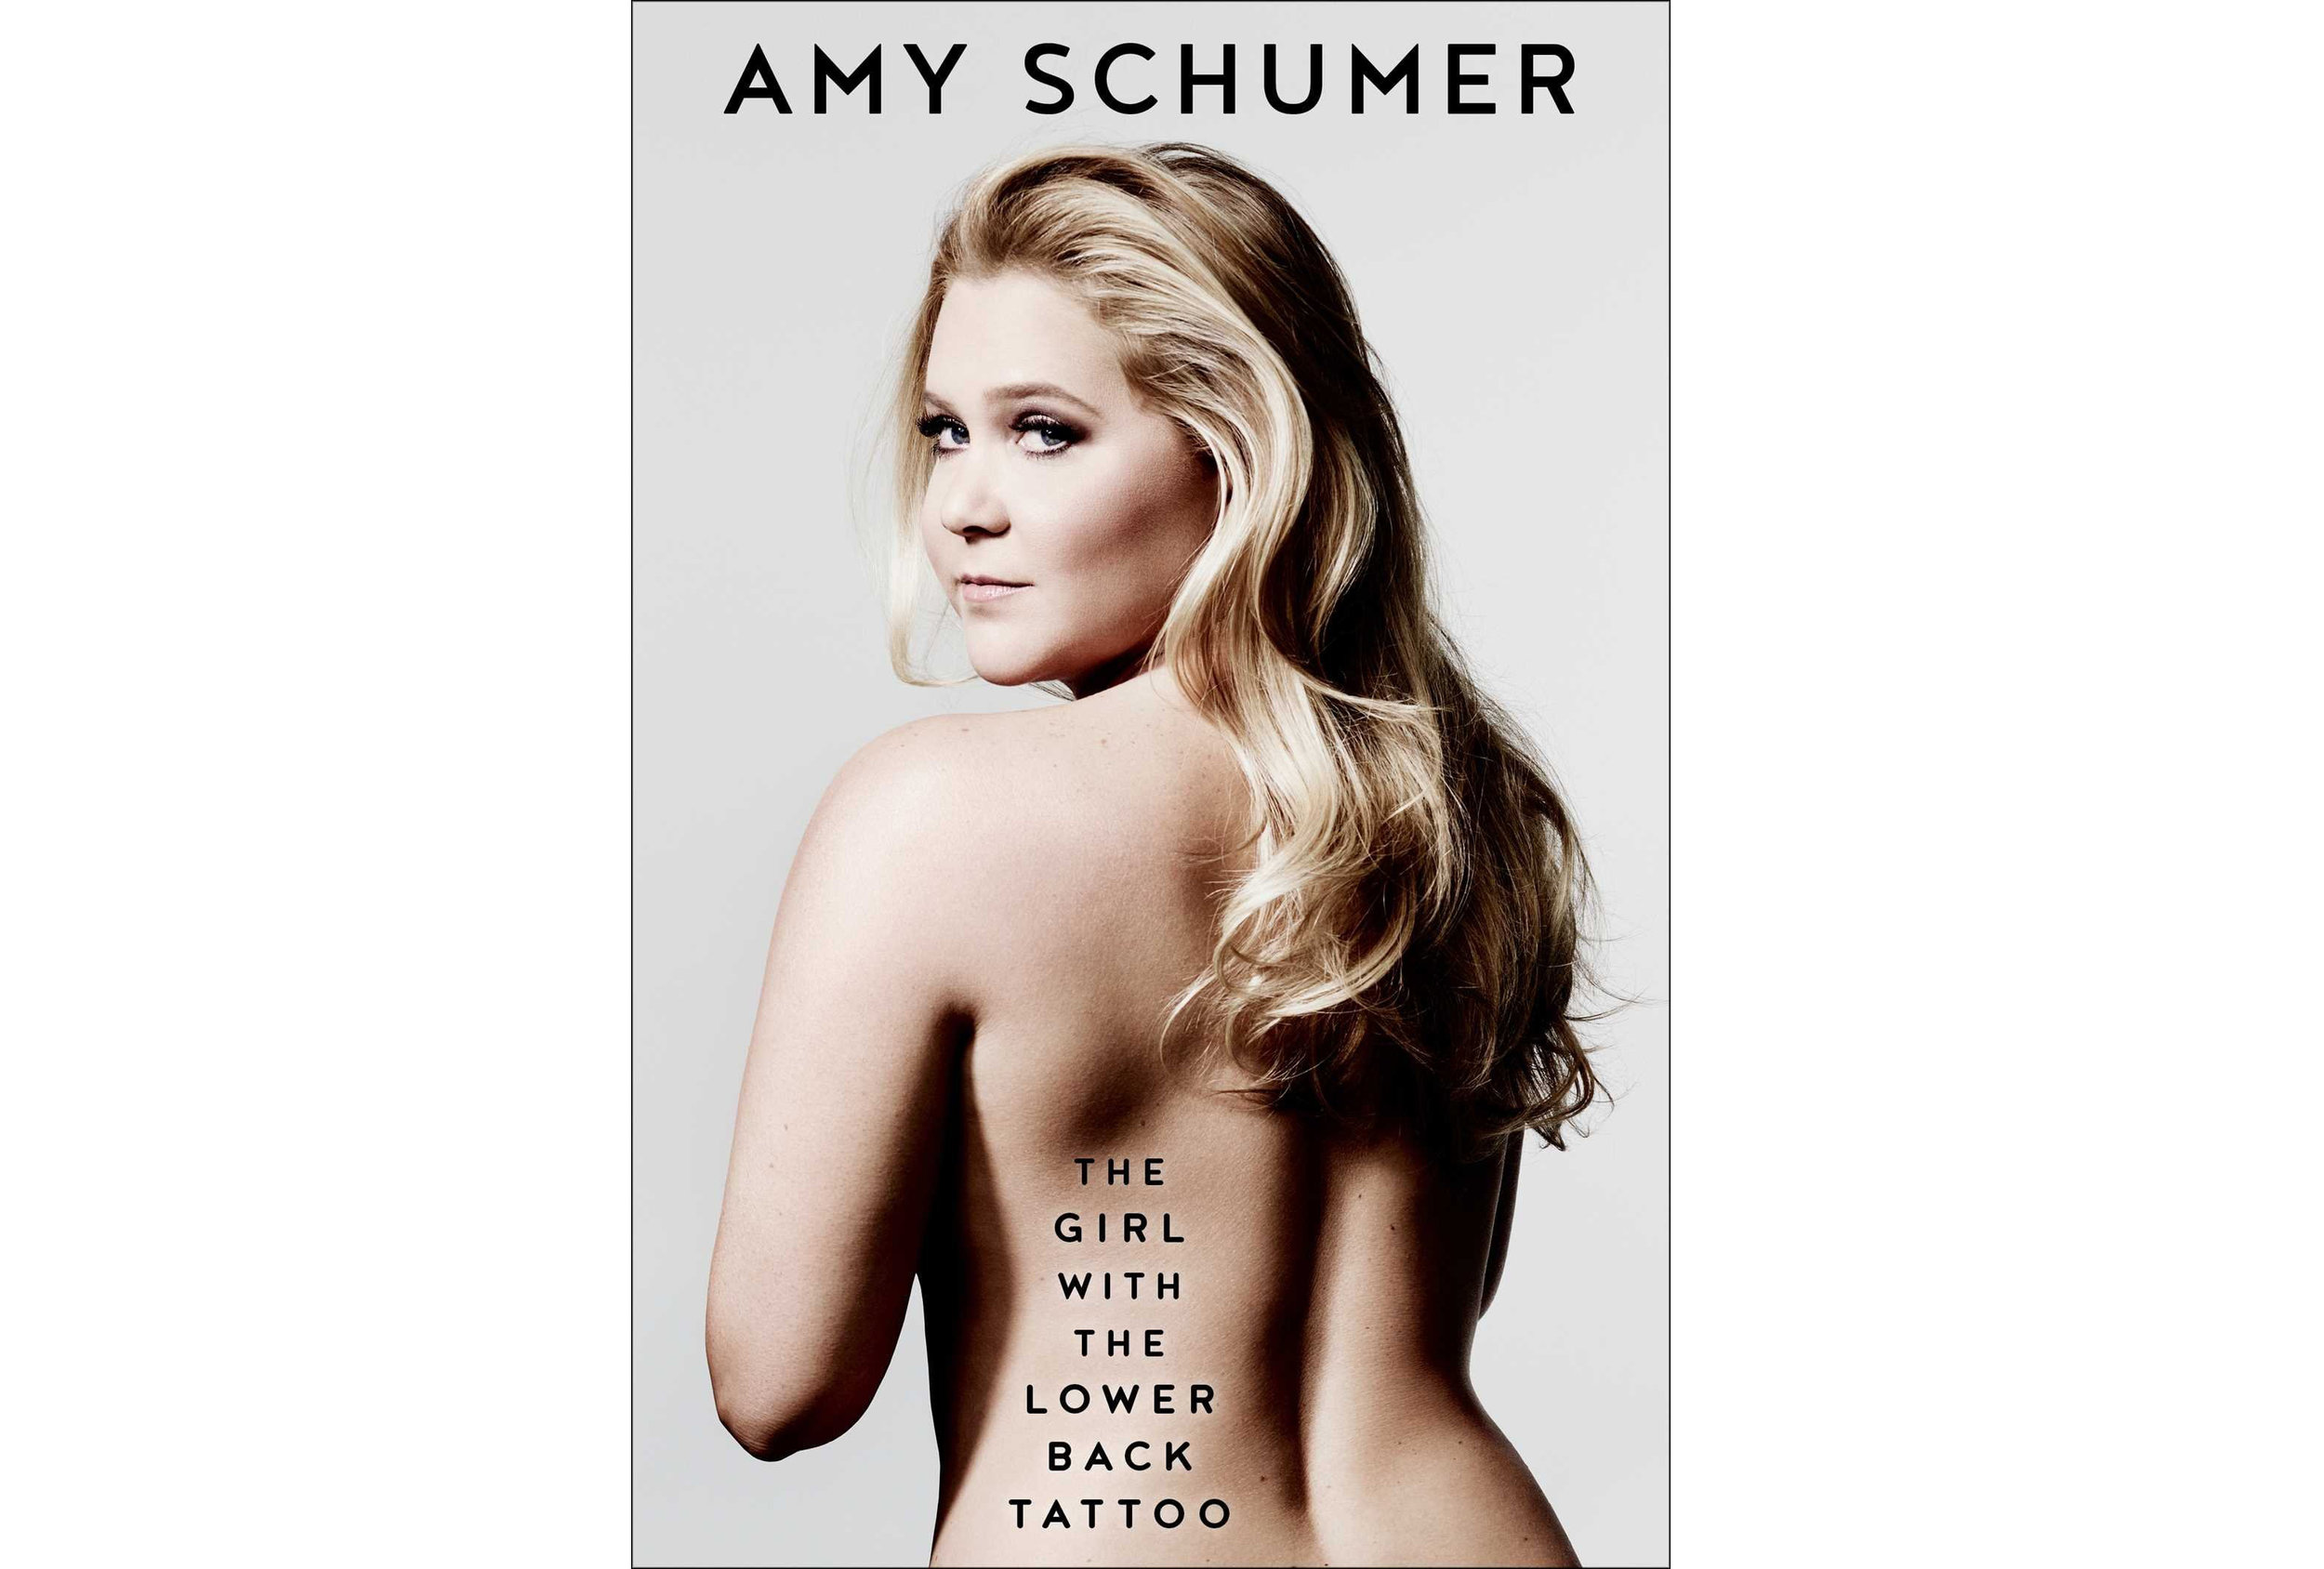 The girl with the lower back tattoo.  - By Amy Schumer